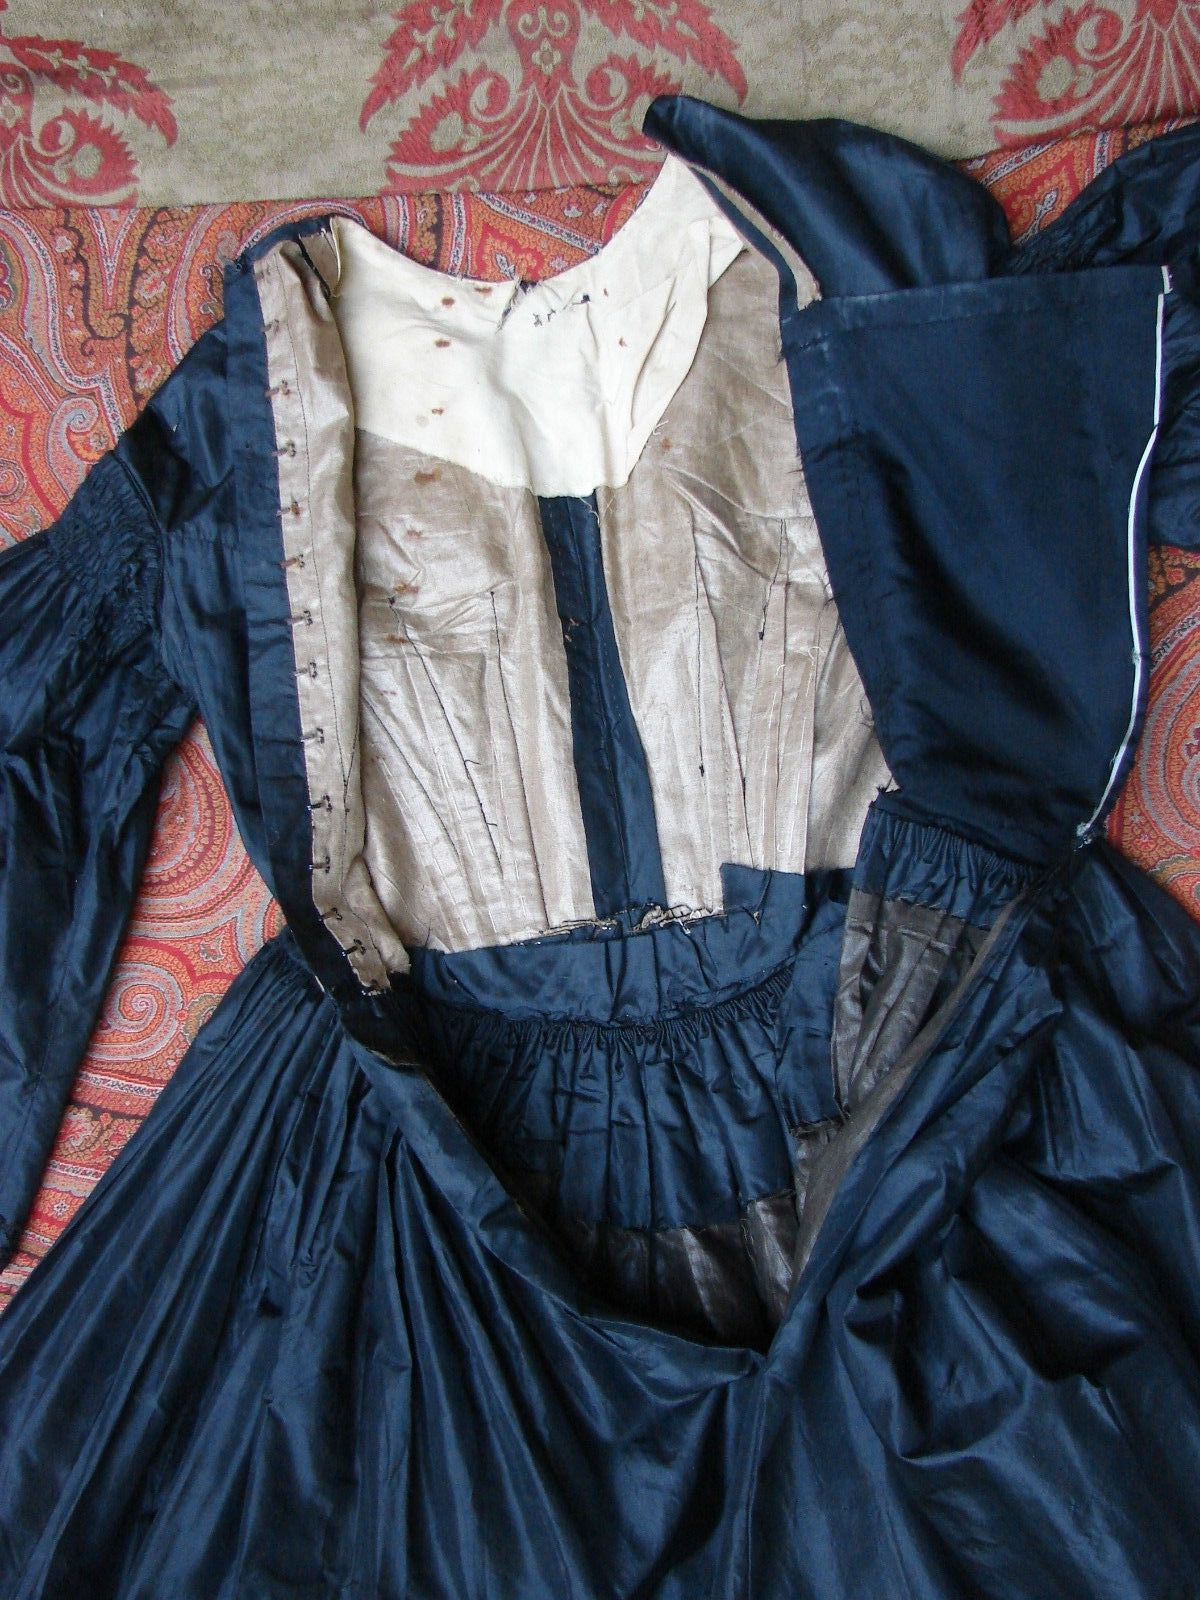 Back Opening And Inside Bodice Of 1840s 50s Black Dress Shows The Darts At The Front And An Added Section Of Century Clothing 1830s Fashion Clothes For Women